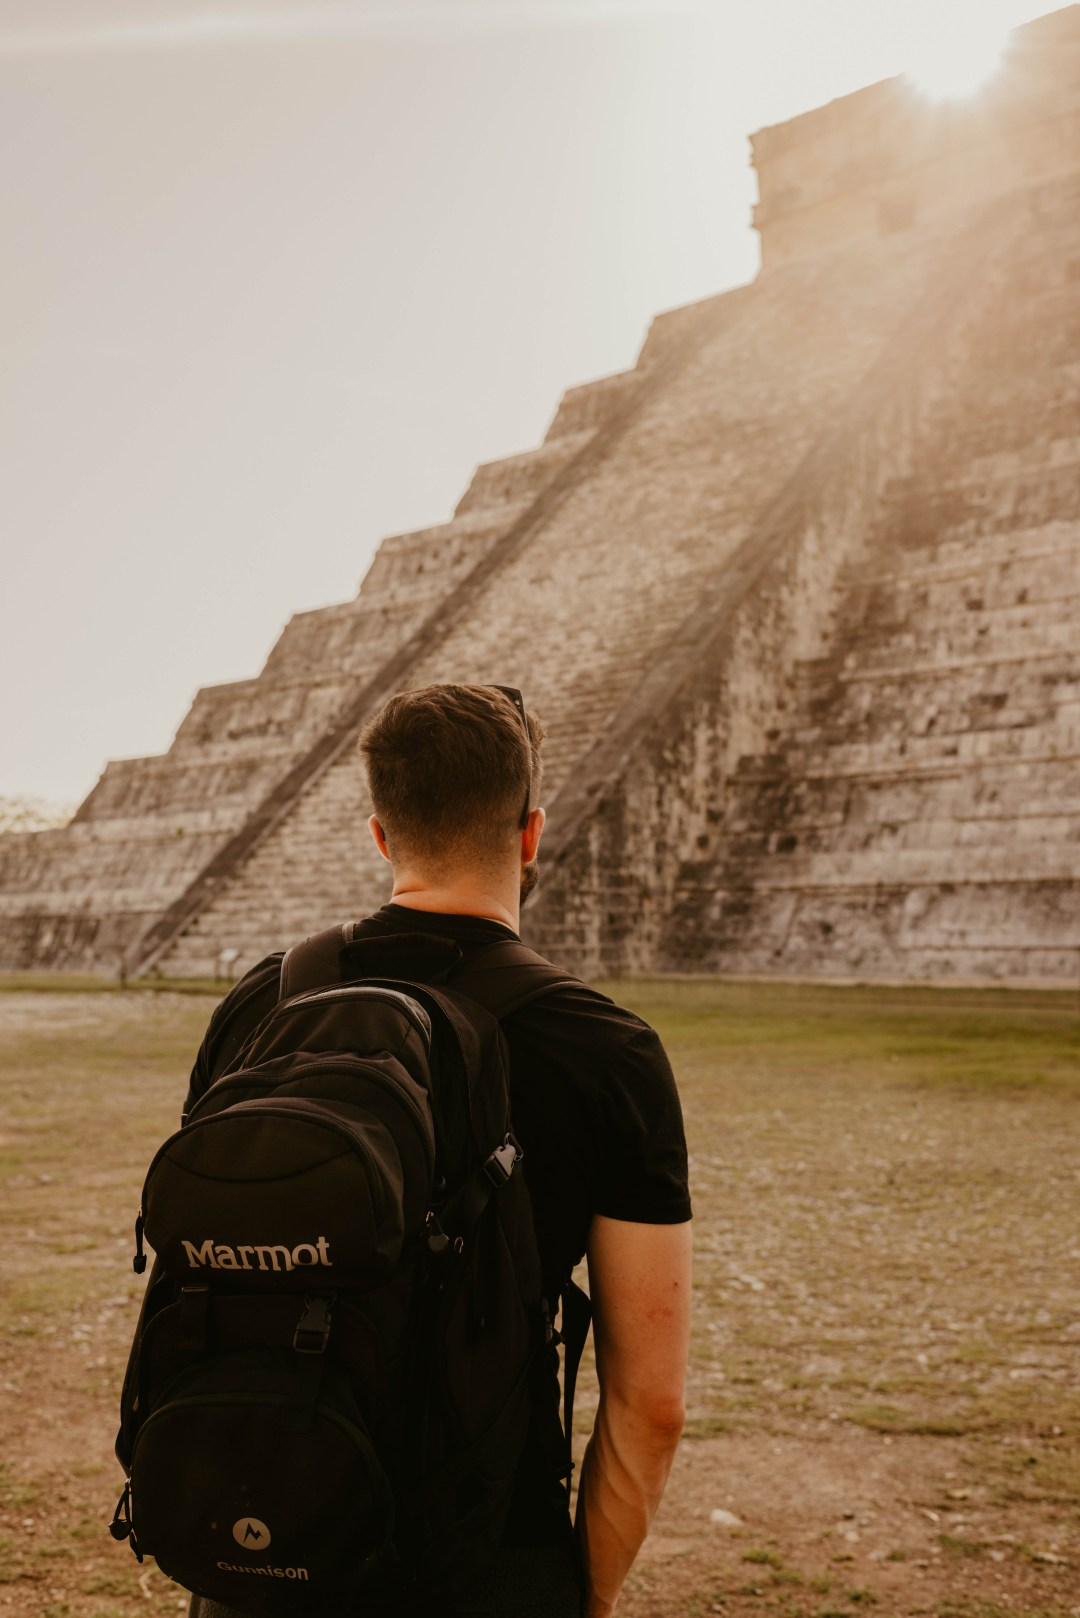 Adventure photography tips include getting to popular attractions right when they open for the best photo opportunities.